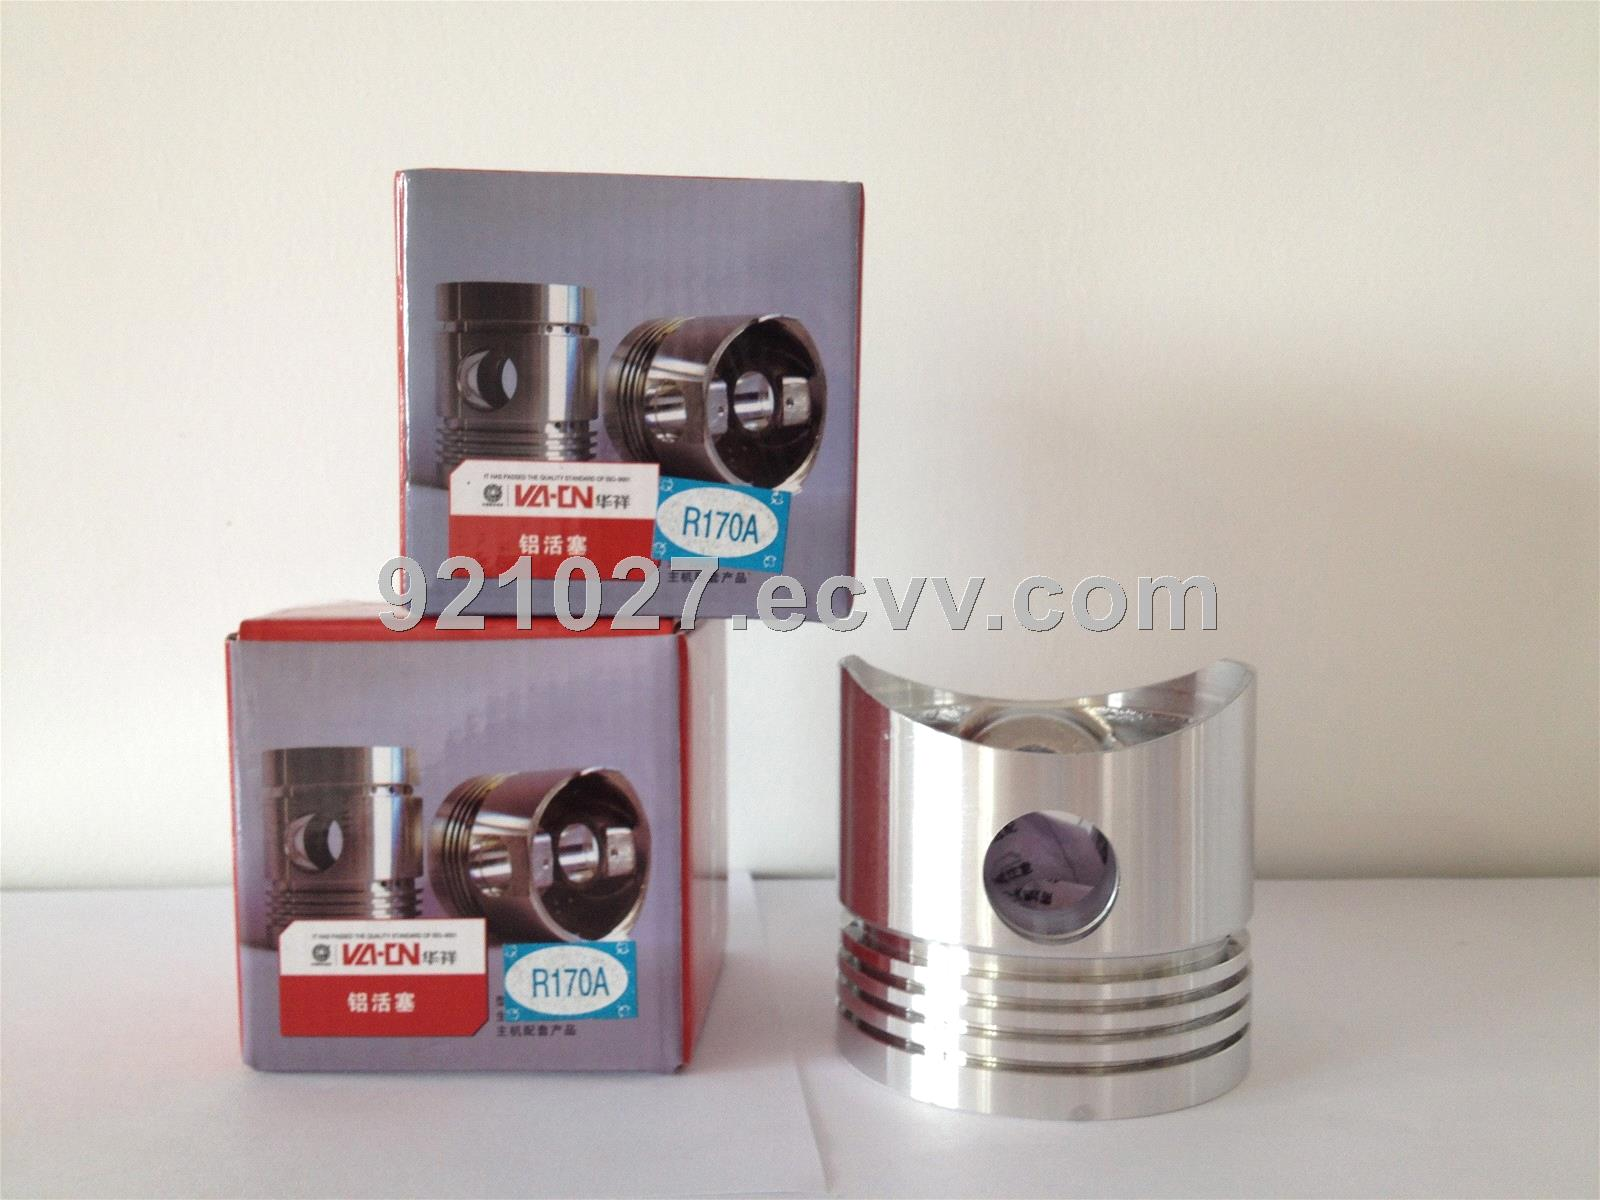 R170A PISTON FOR SINGLE CYLINDER DIESEL ENGINE